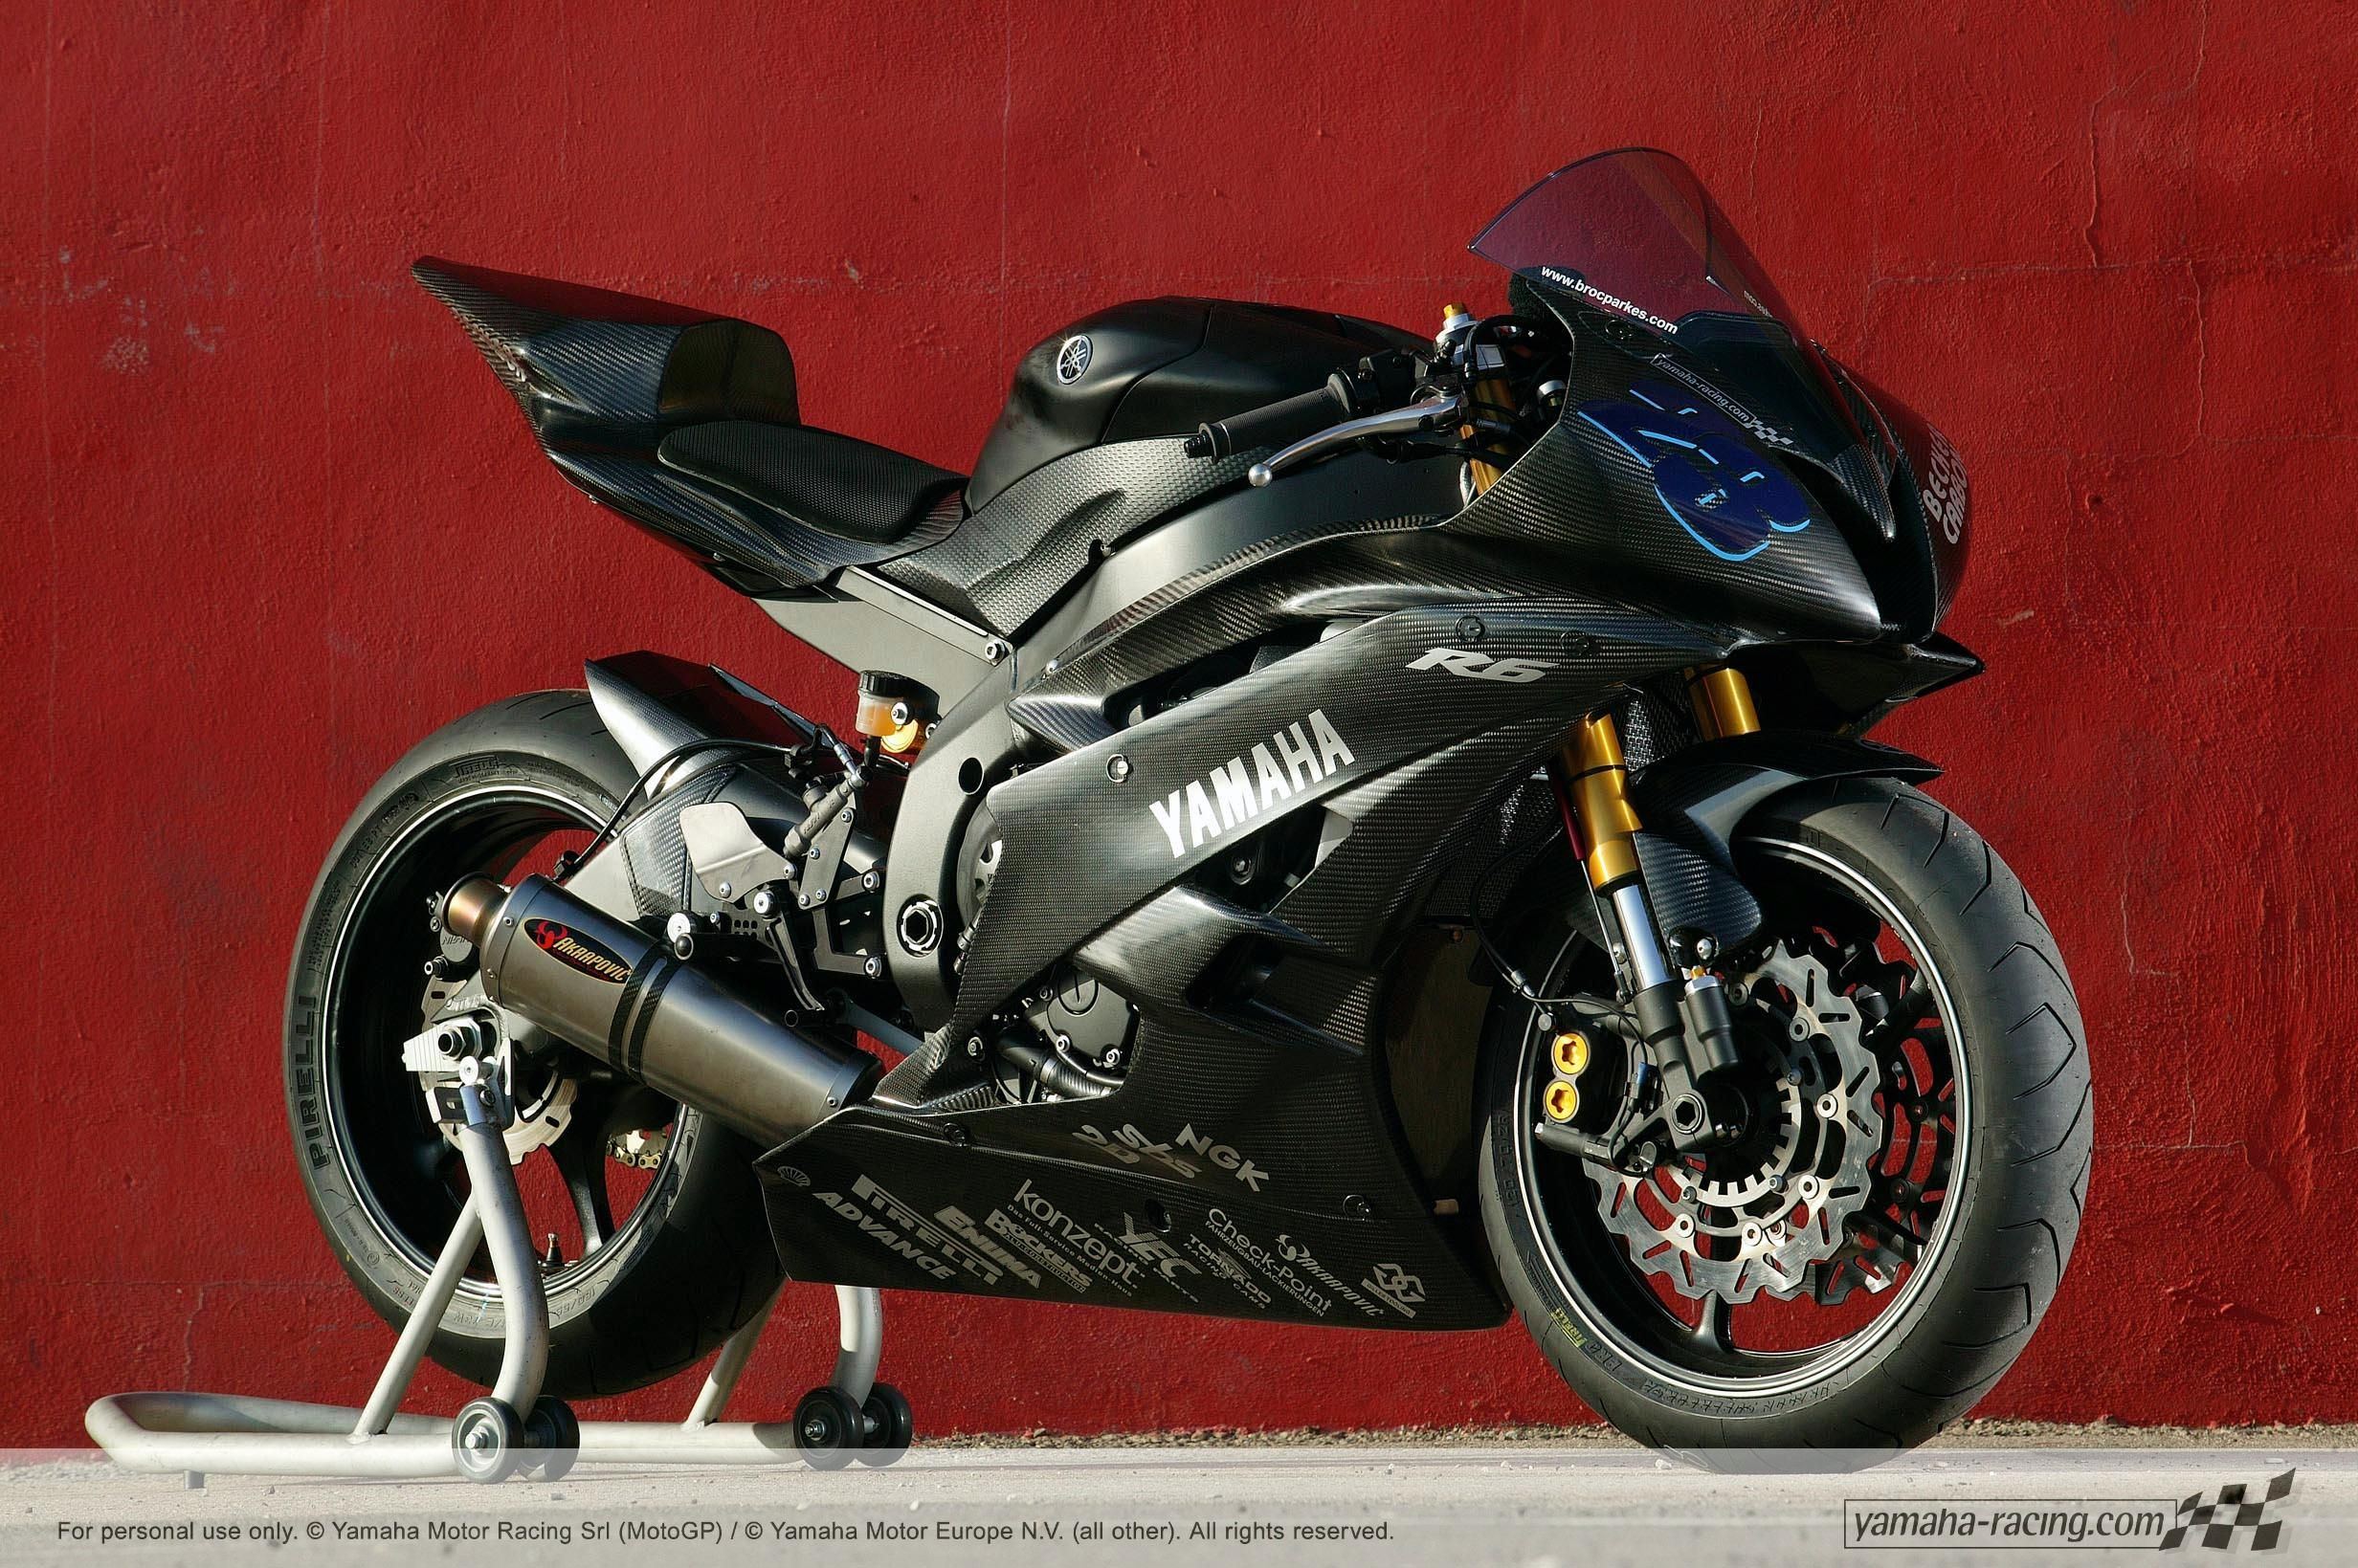 Yamaha r6 carbon fiber google search motorbikes for Yamaha r6 carbon fiber exhaust